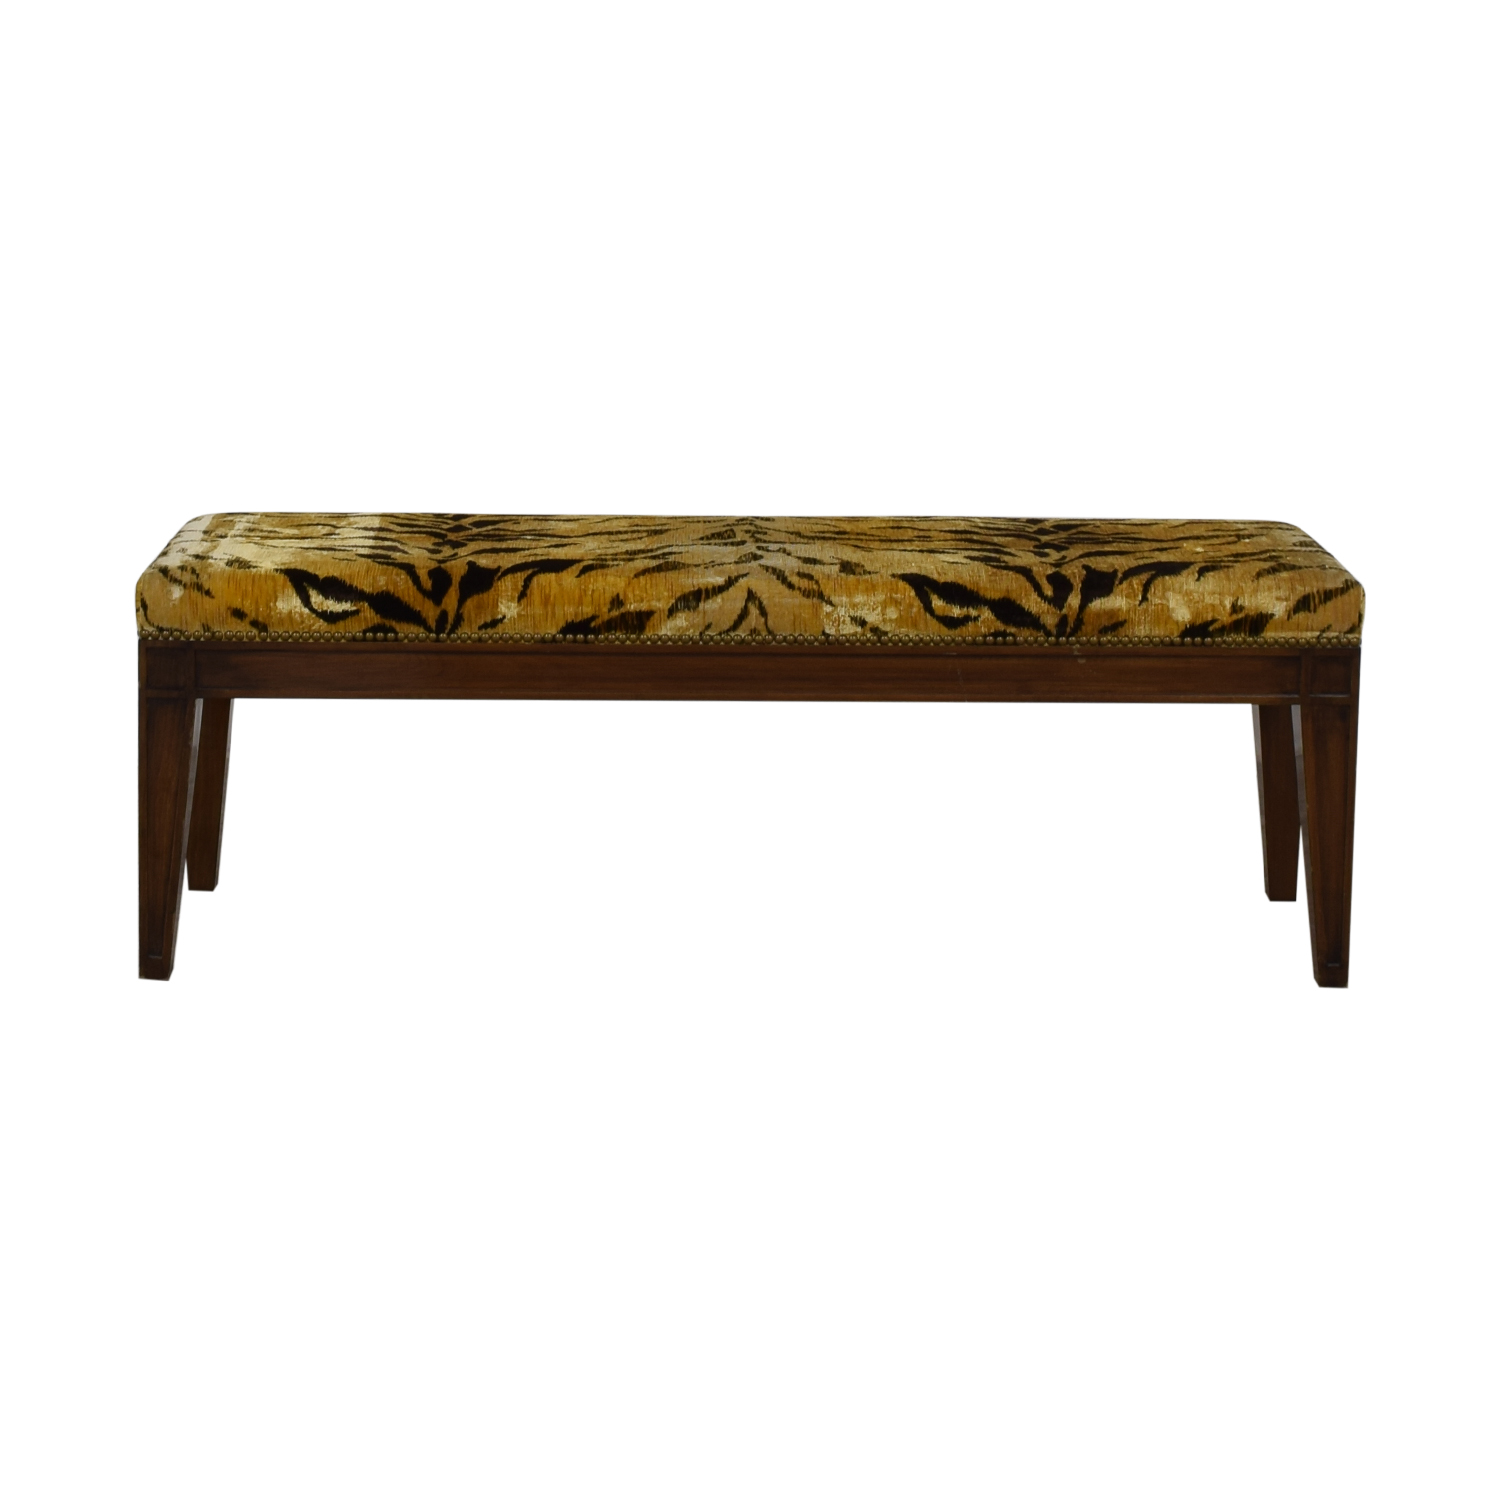 Furniture Masters Furniture Masters Tiger Print Ottoman on sale